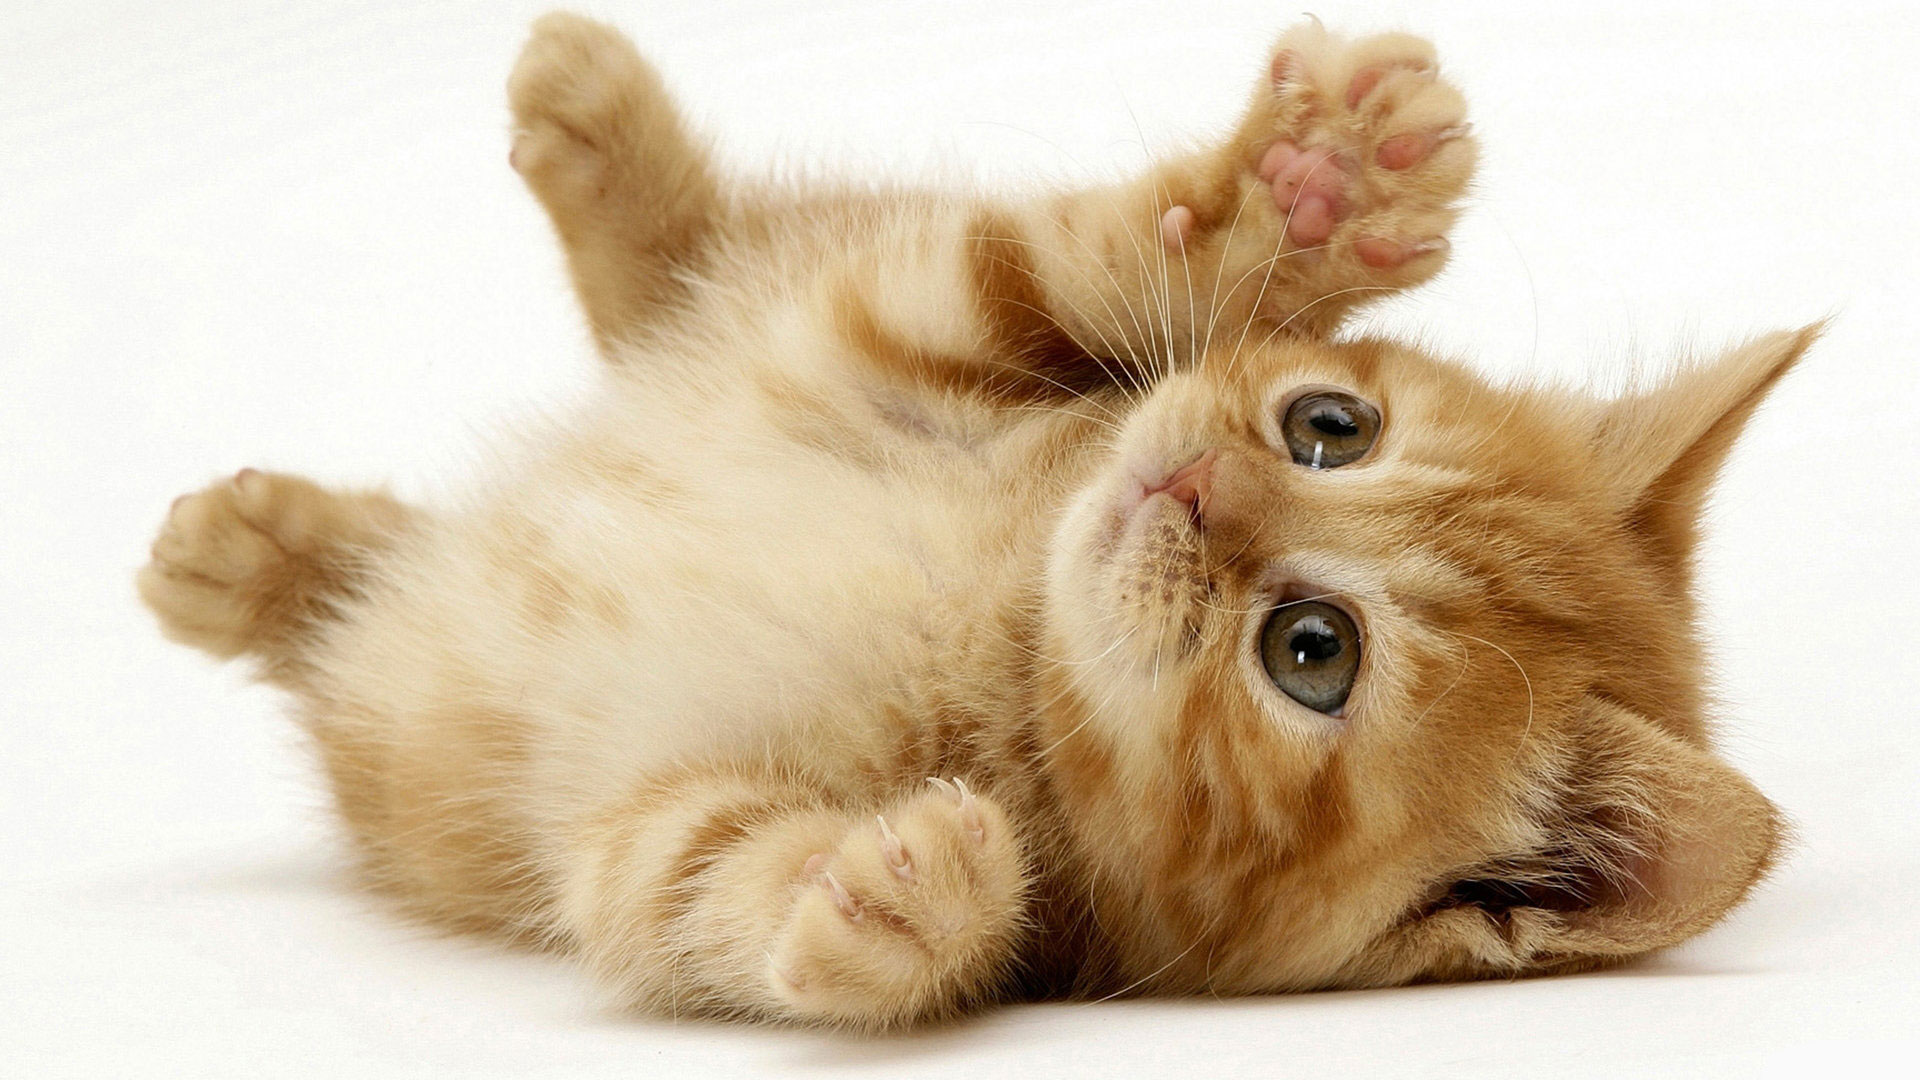 little_cute_cat_1920x1080.jpg